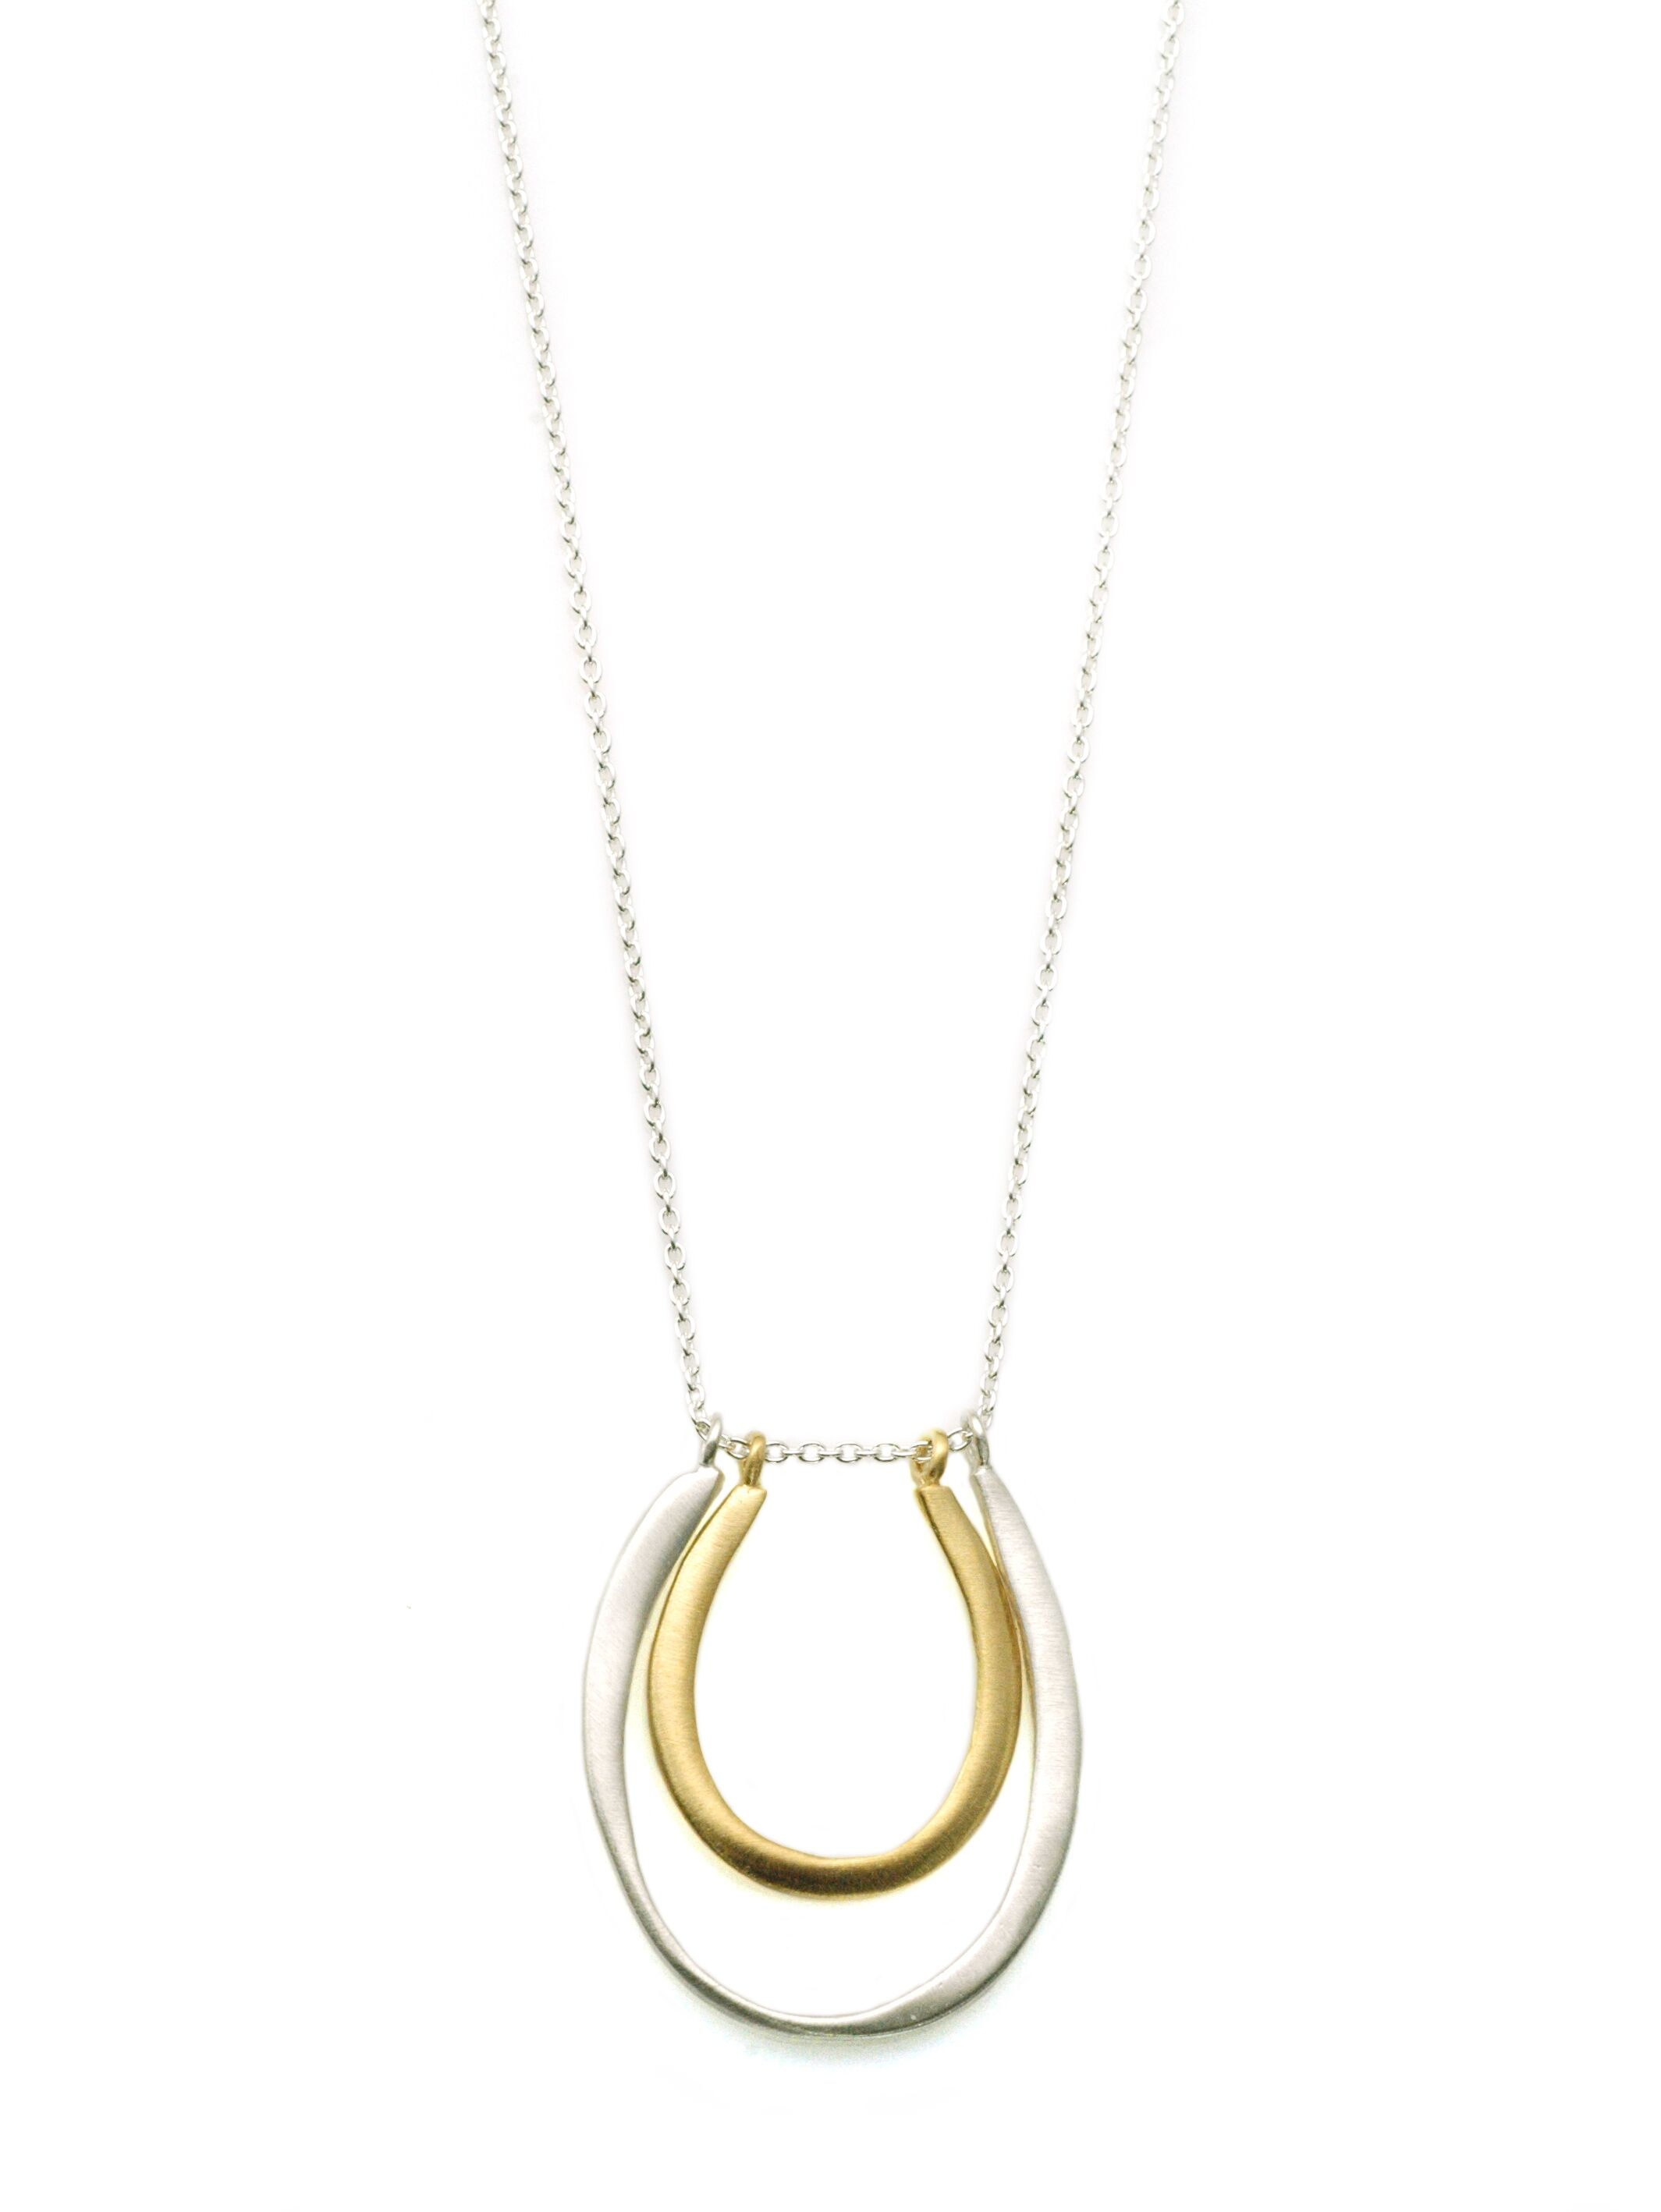 Double U Sterling & Vermeil Necklace